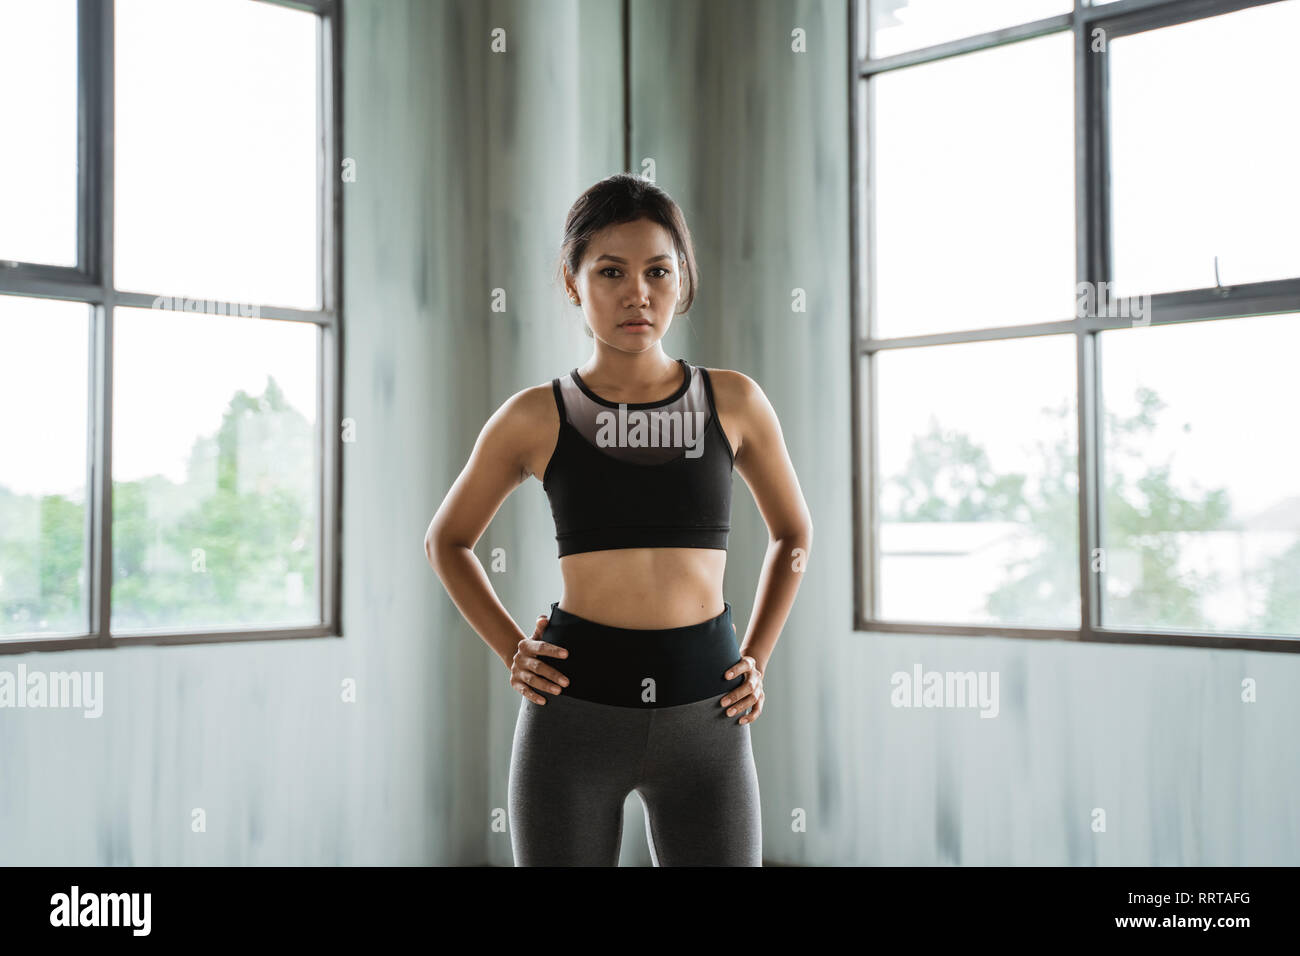 2bf09890d8c2b Young Woman Fitness Stock Photos   Young Woman Fitness Stock Images ...